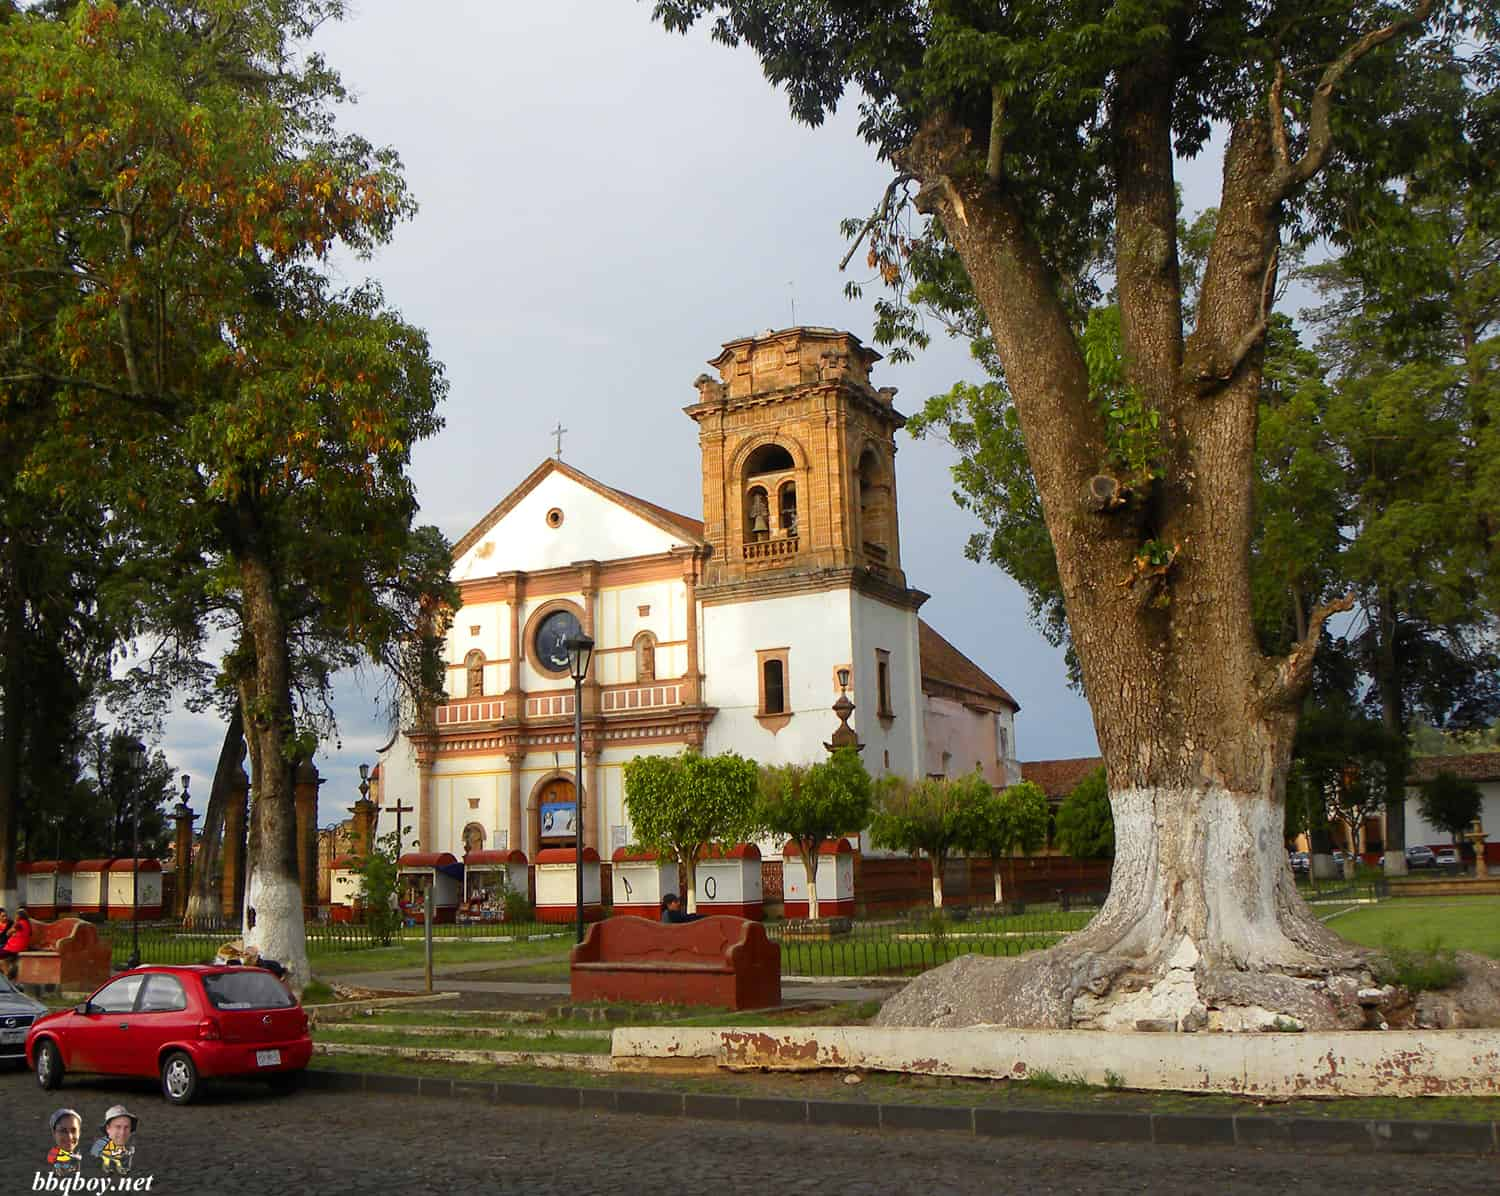 Church of Our Virgin of Health (Basilica de Nuestra Senora de la Salud), Patzcuaro, Mexico